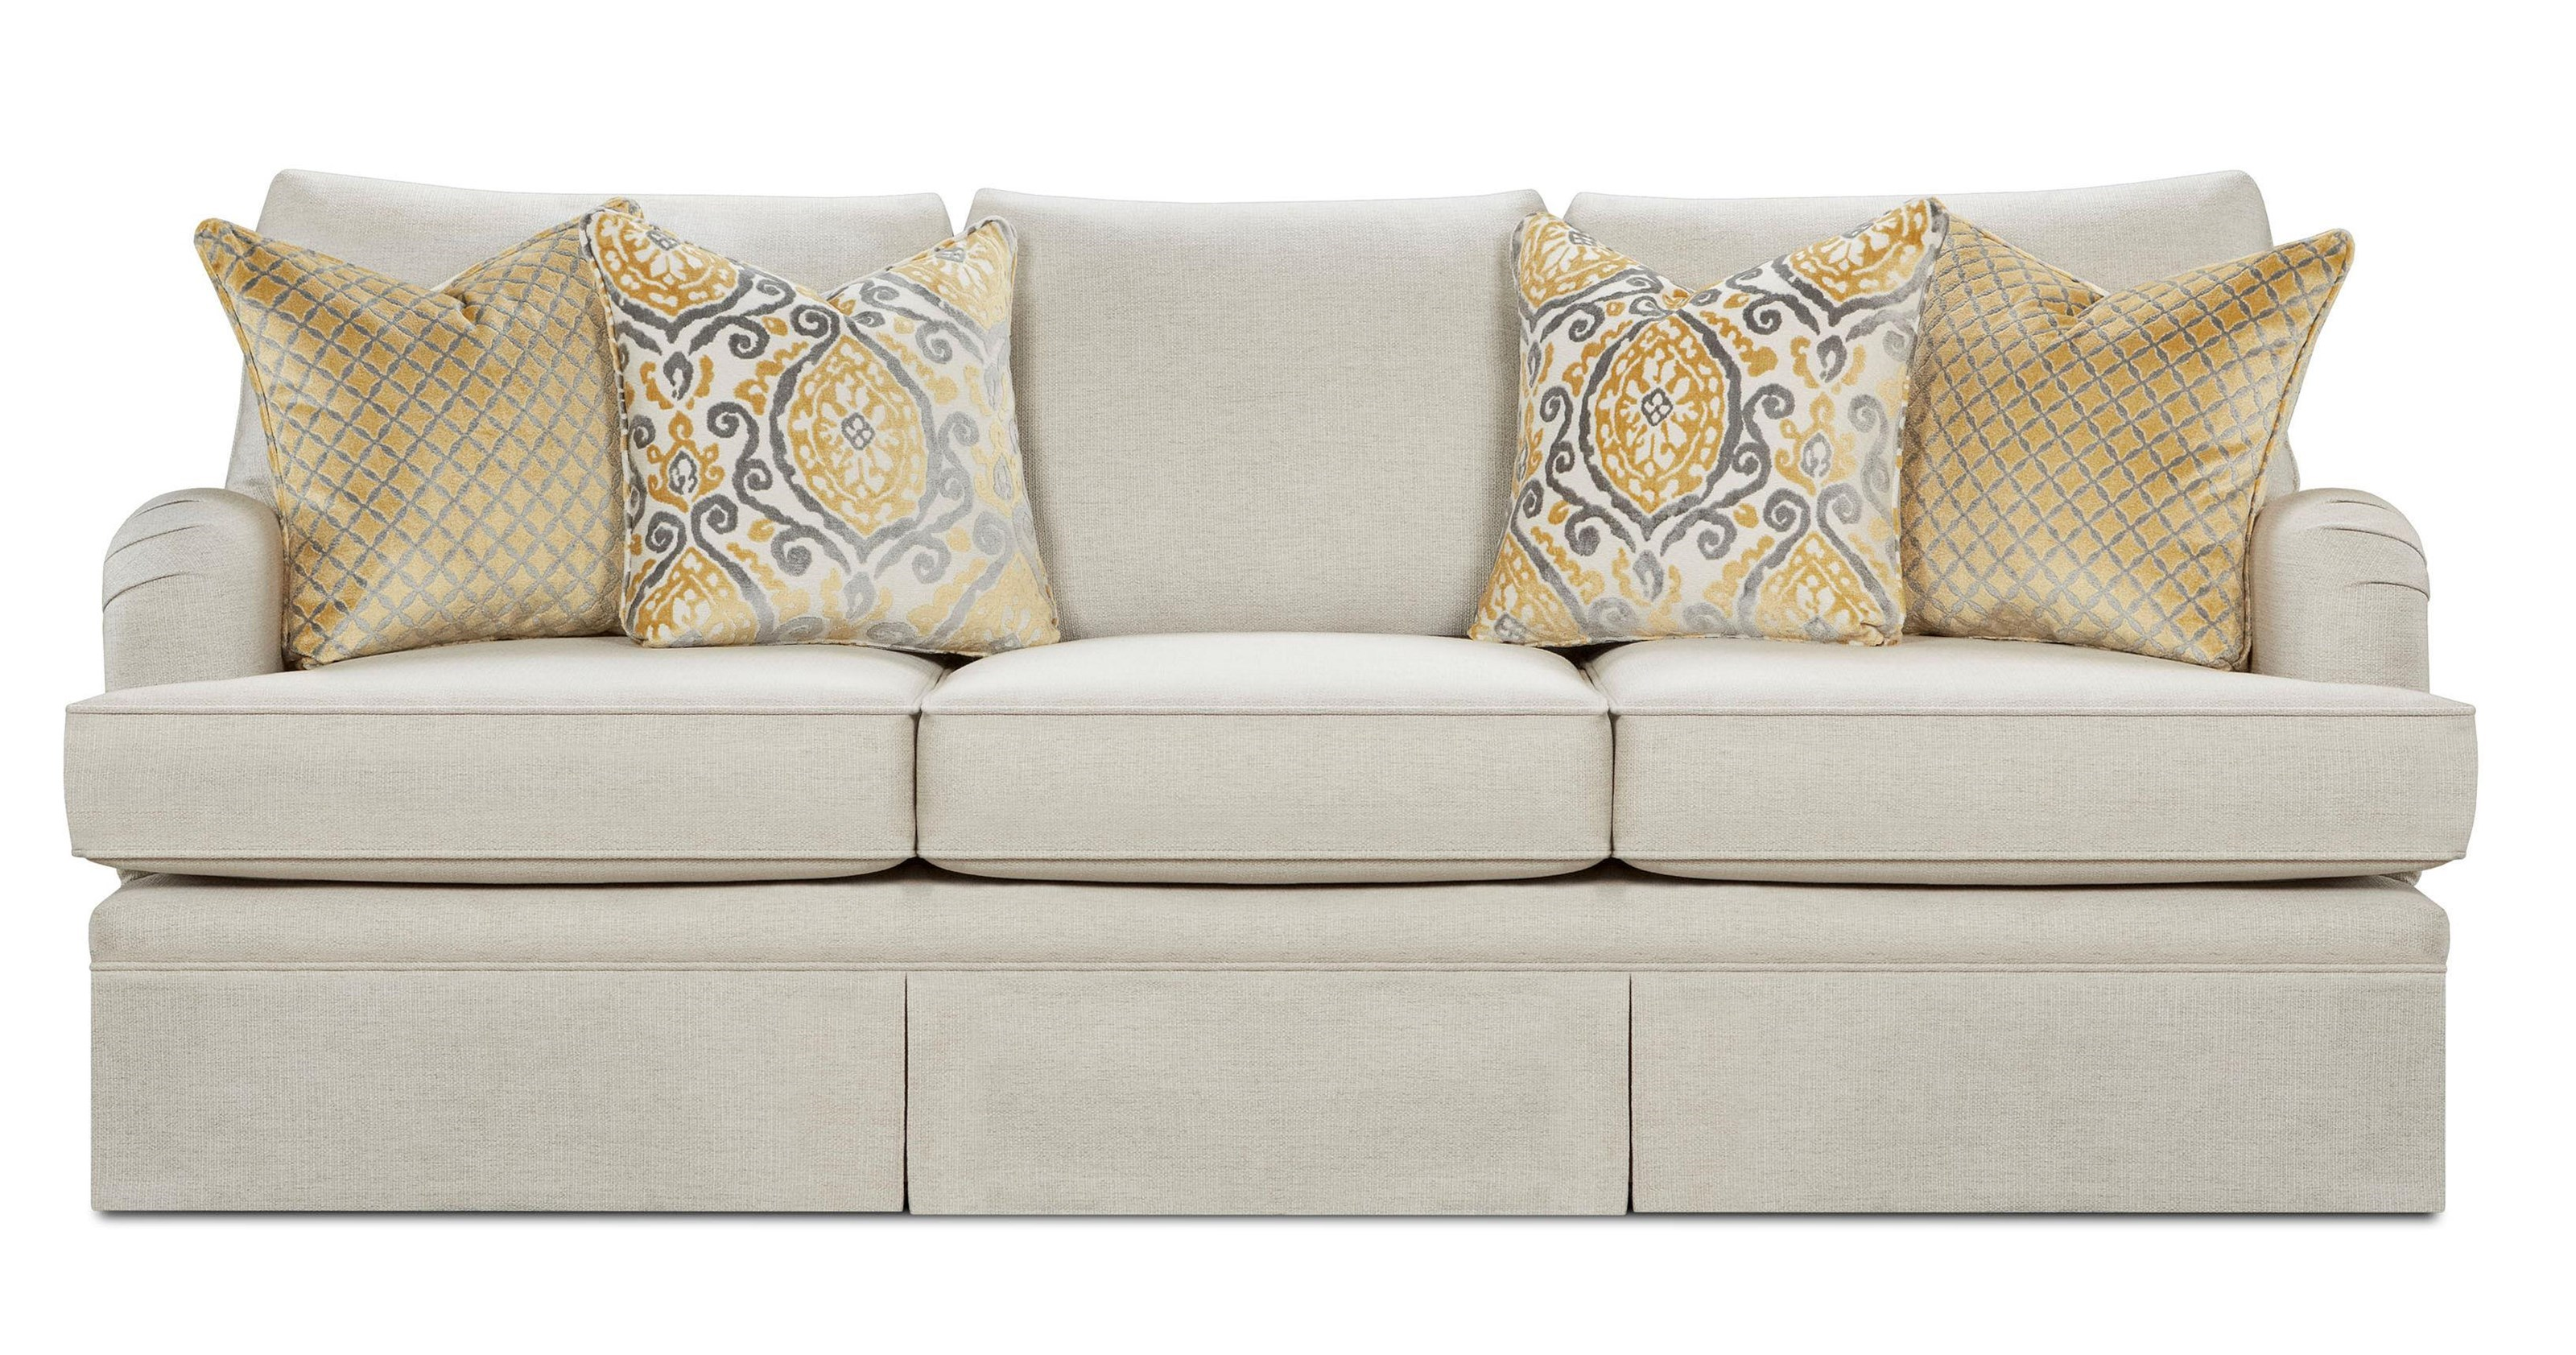 Beau Fusion Furniture 6000 Parker Linen Traditional Sofa With English Arms And  Skirt Base